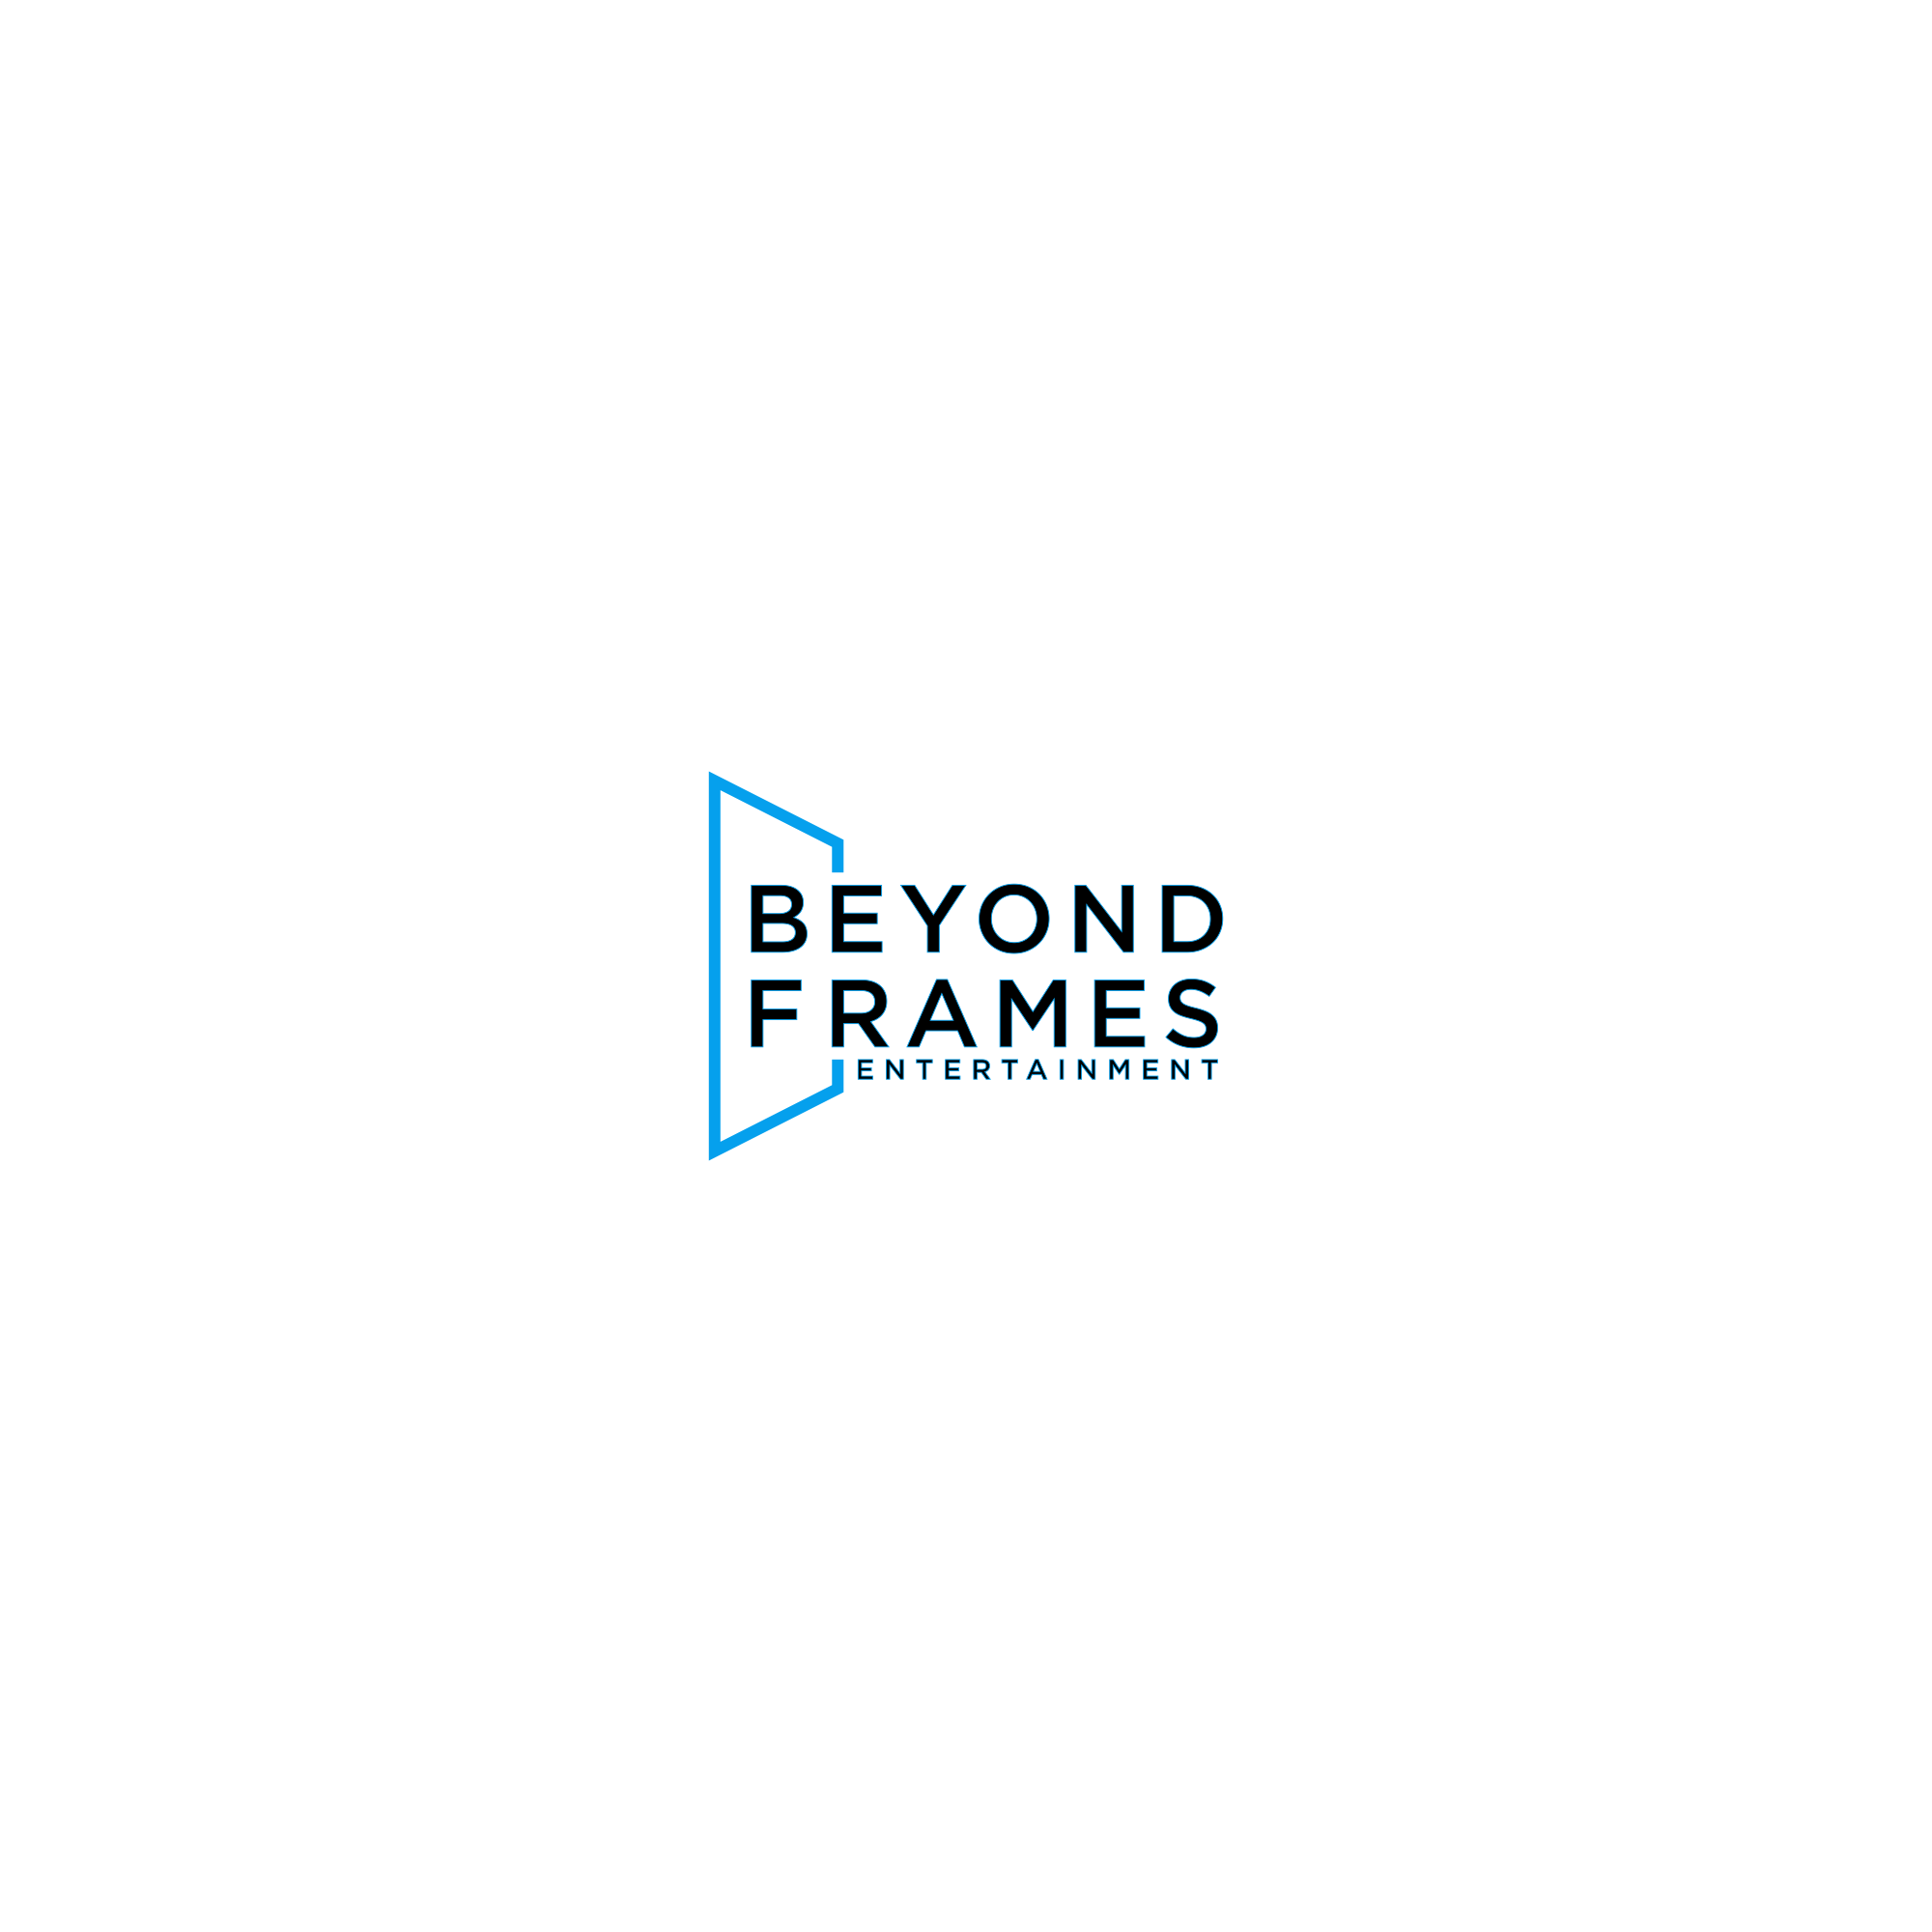 Beyond Frames Entertainment AB Logo